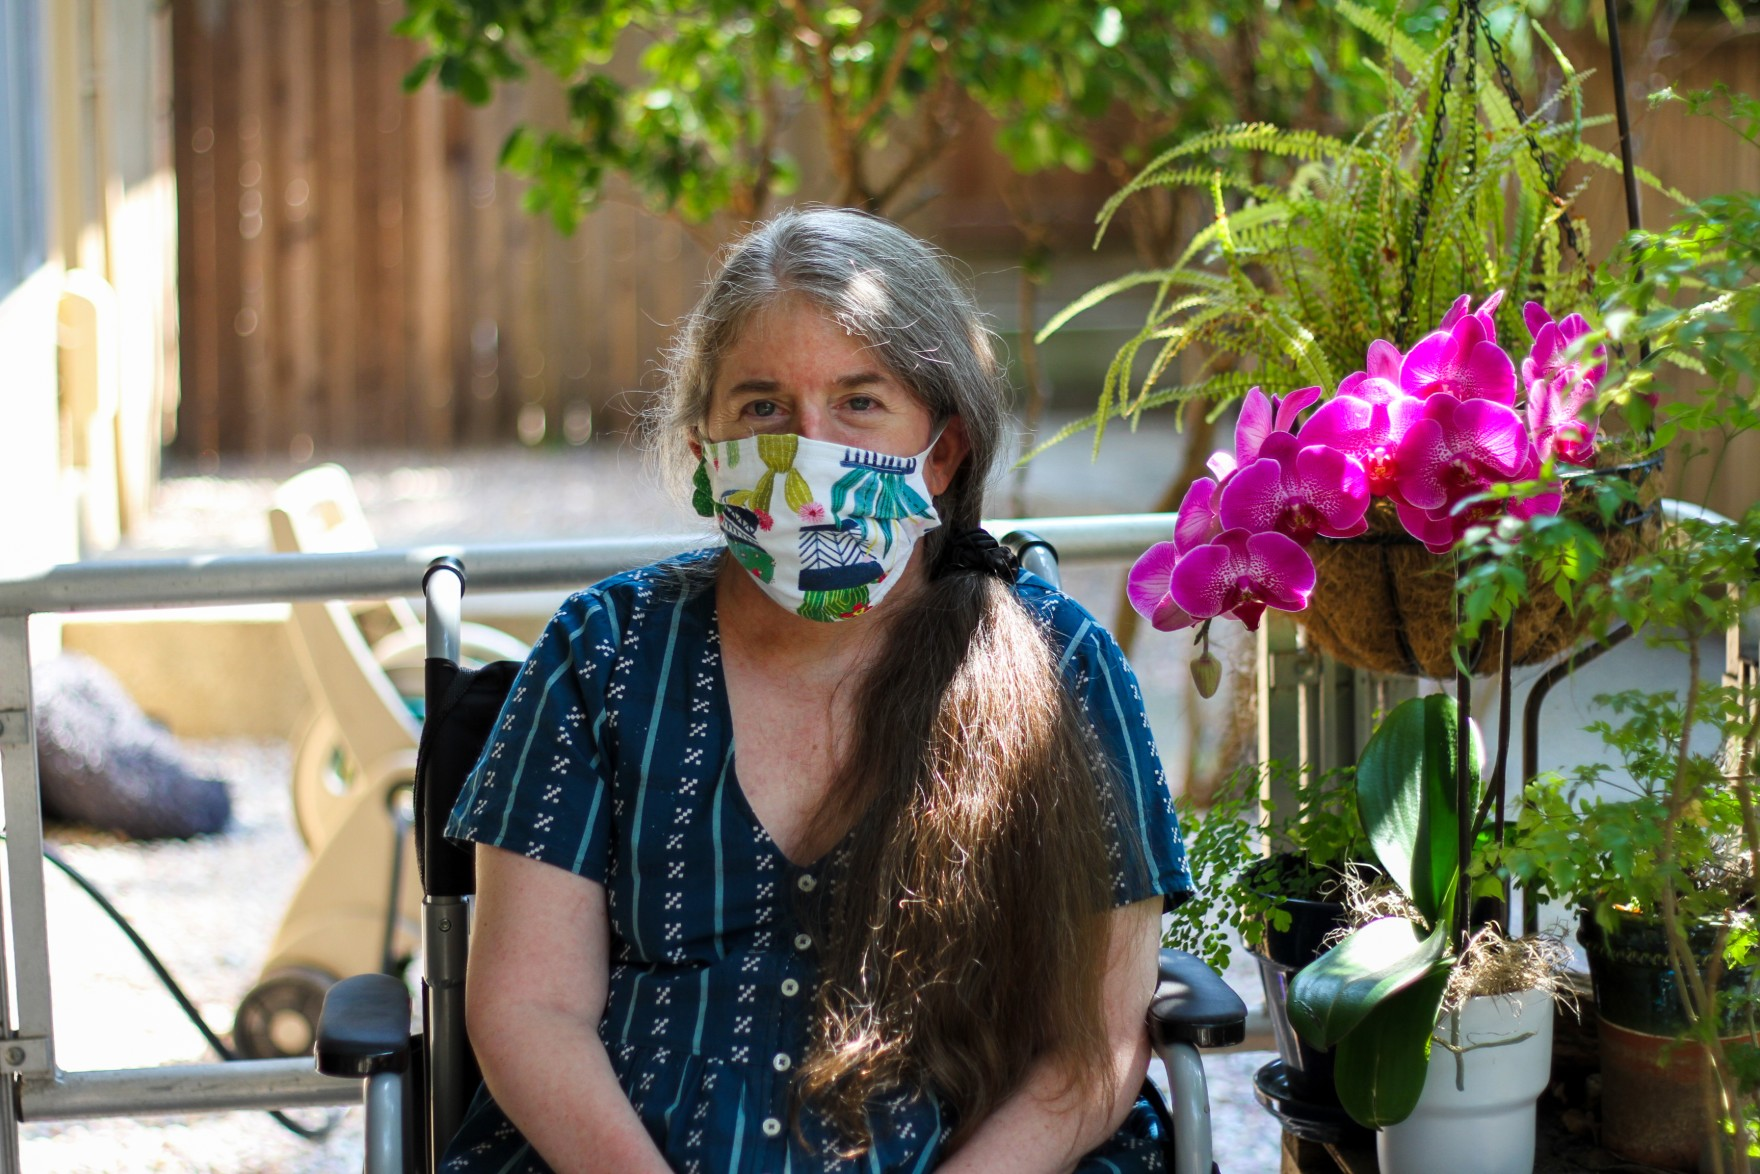 Ingrid, a white woman, is sitting in a chair on her front porch next to a bright magenta orchid. She is in her mid 50's and has gray and brown hair. She's wearing a white face mask with a plant pattern on it, and a patterned blue dress.